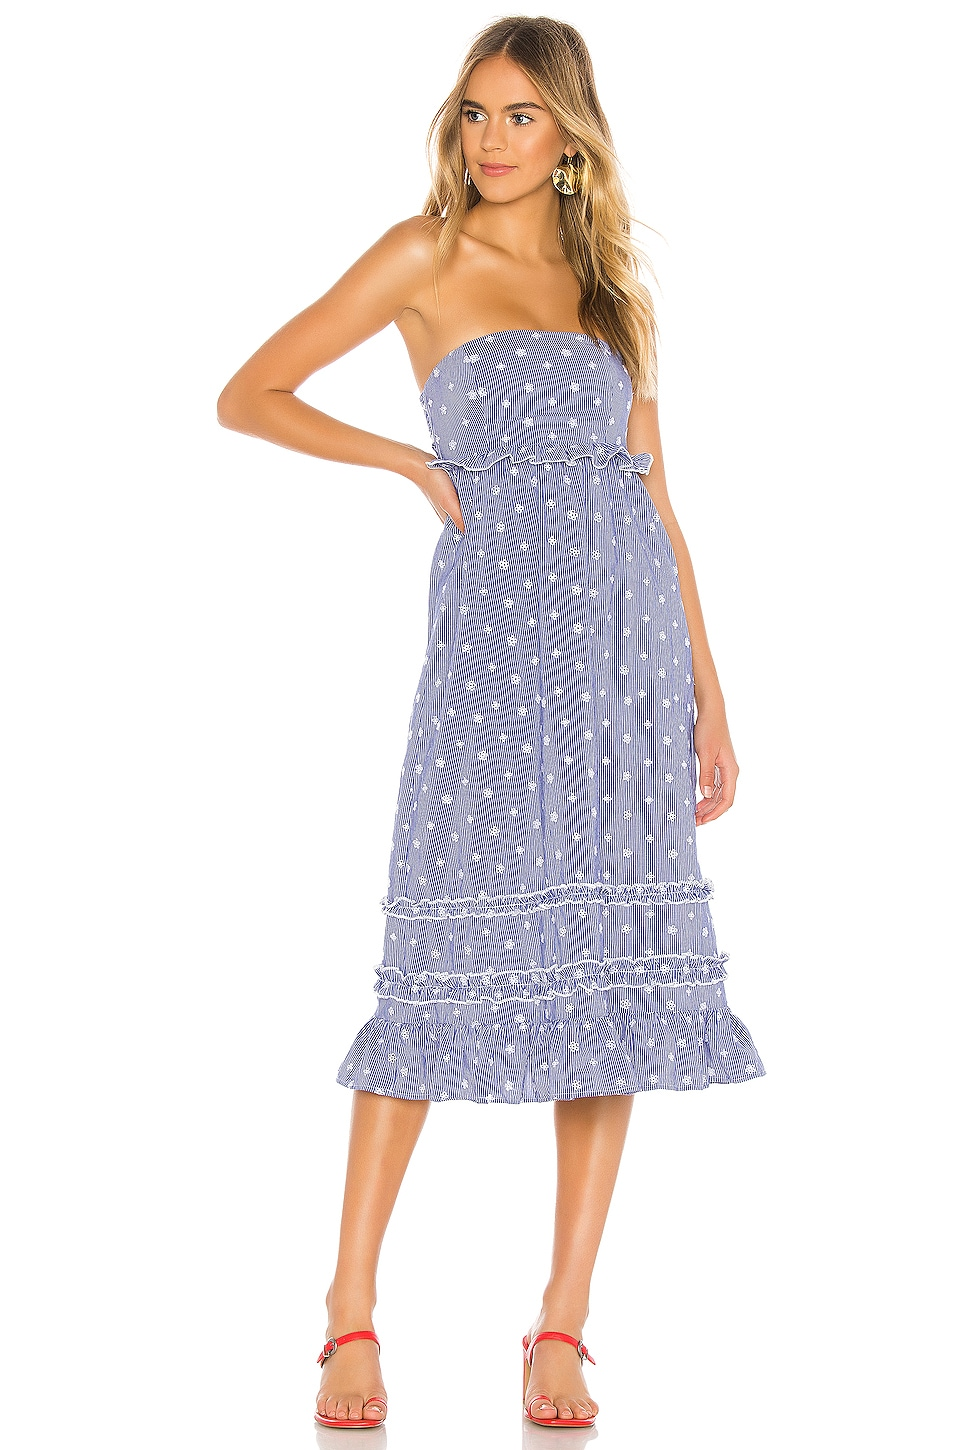 Tularosa Raven Dress in Navy & White